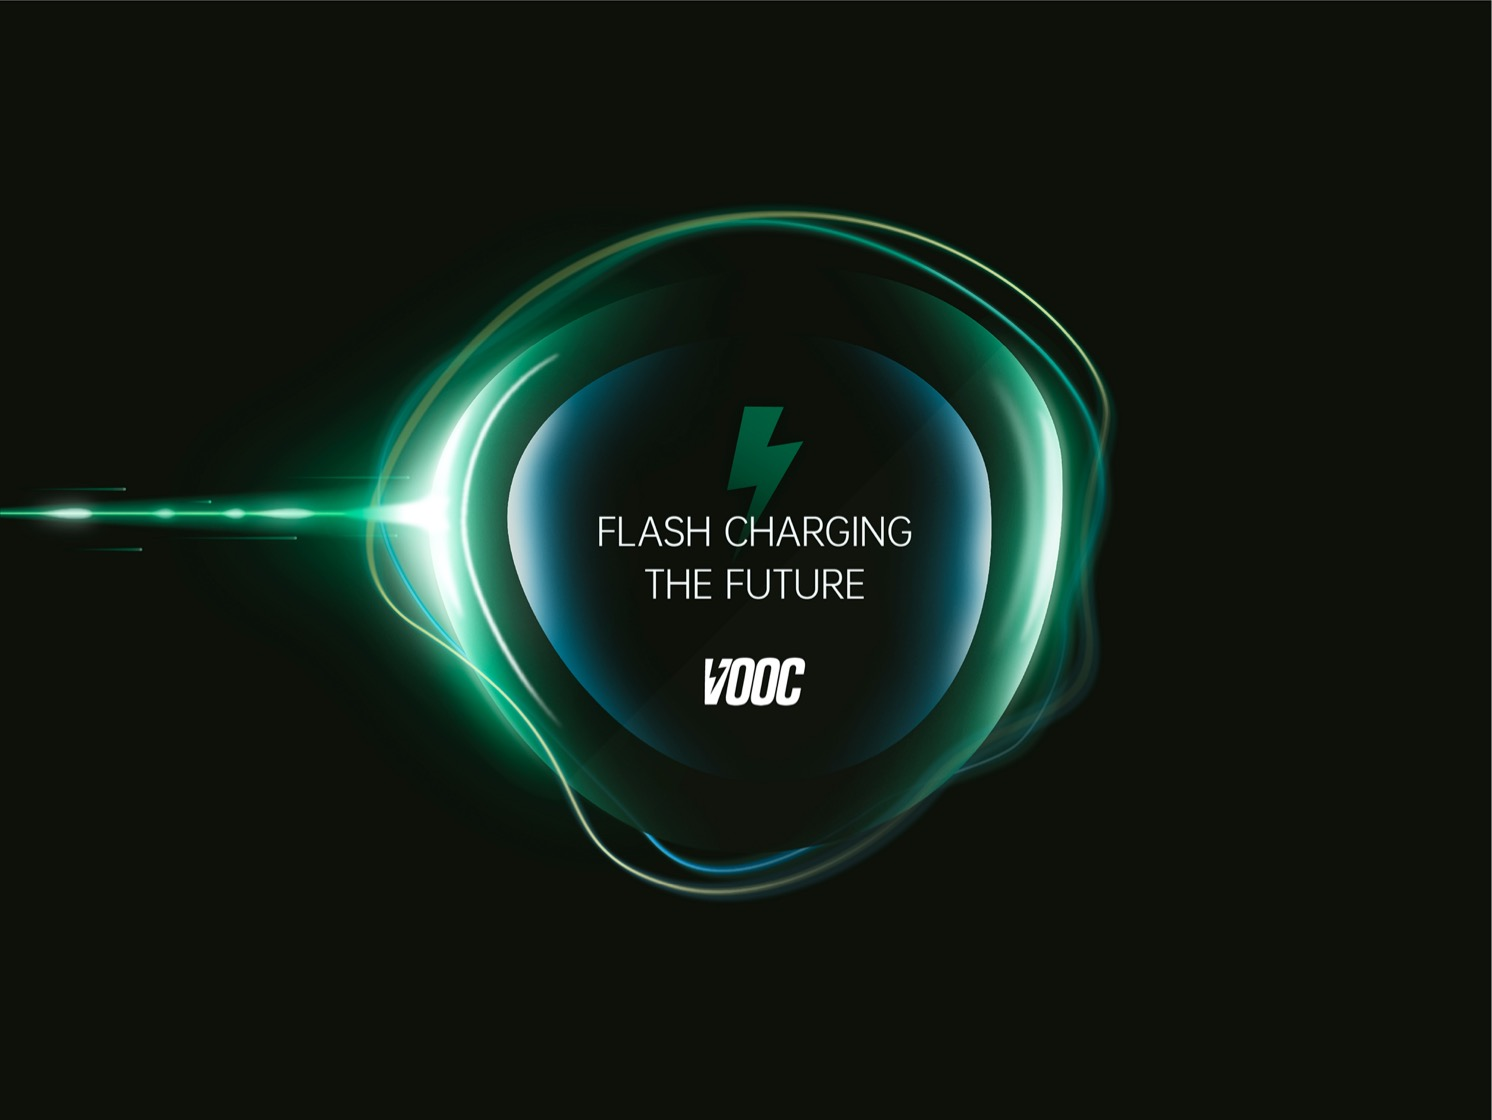 Oppo brings VOOC super fast charging technology to cars and Anker backup charger